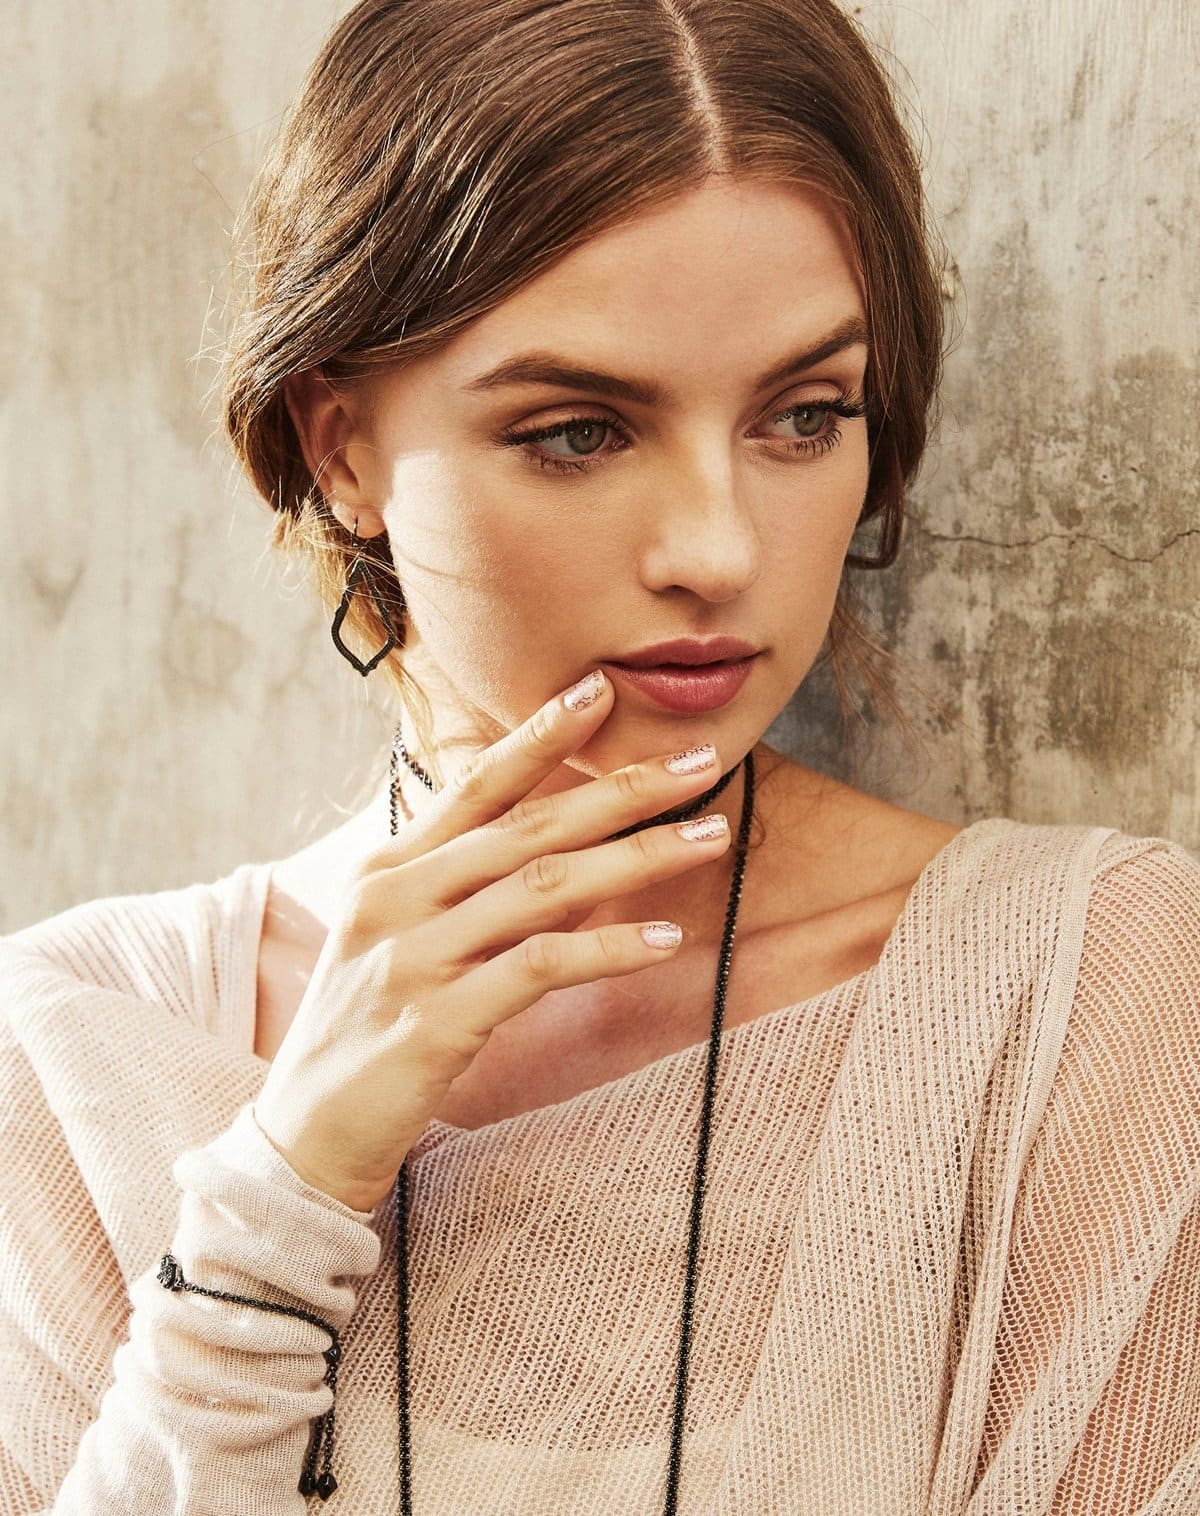 Intricately textured with leafy indentations, these lovely drop earrings from American jewelry designer Kendra Scott feature a subtly curved silhouette that finishes your look with understated femininity